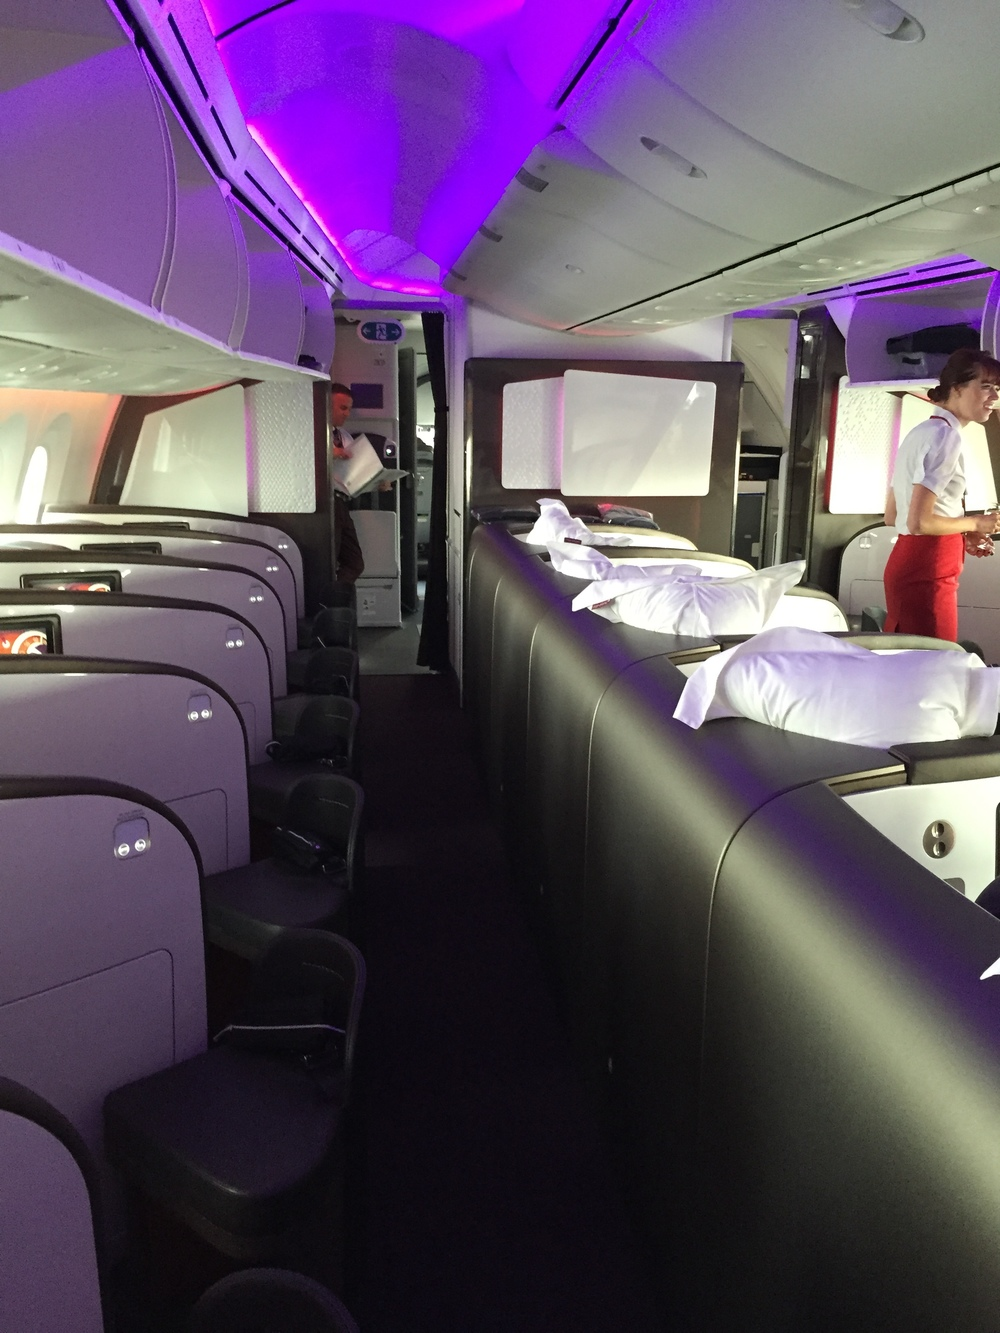 Virgin's 787-9 Upper Class layout. pick a seat on the 'A' side!